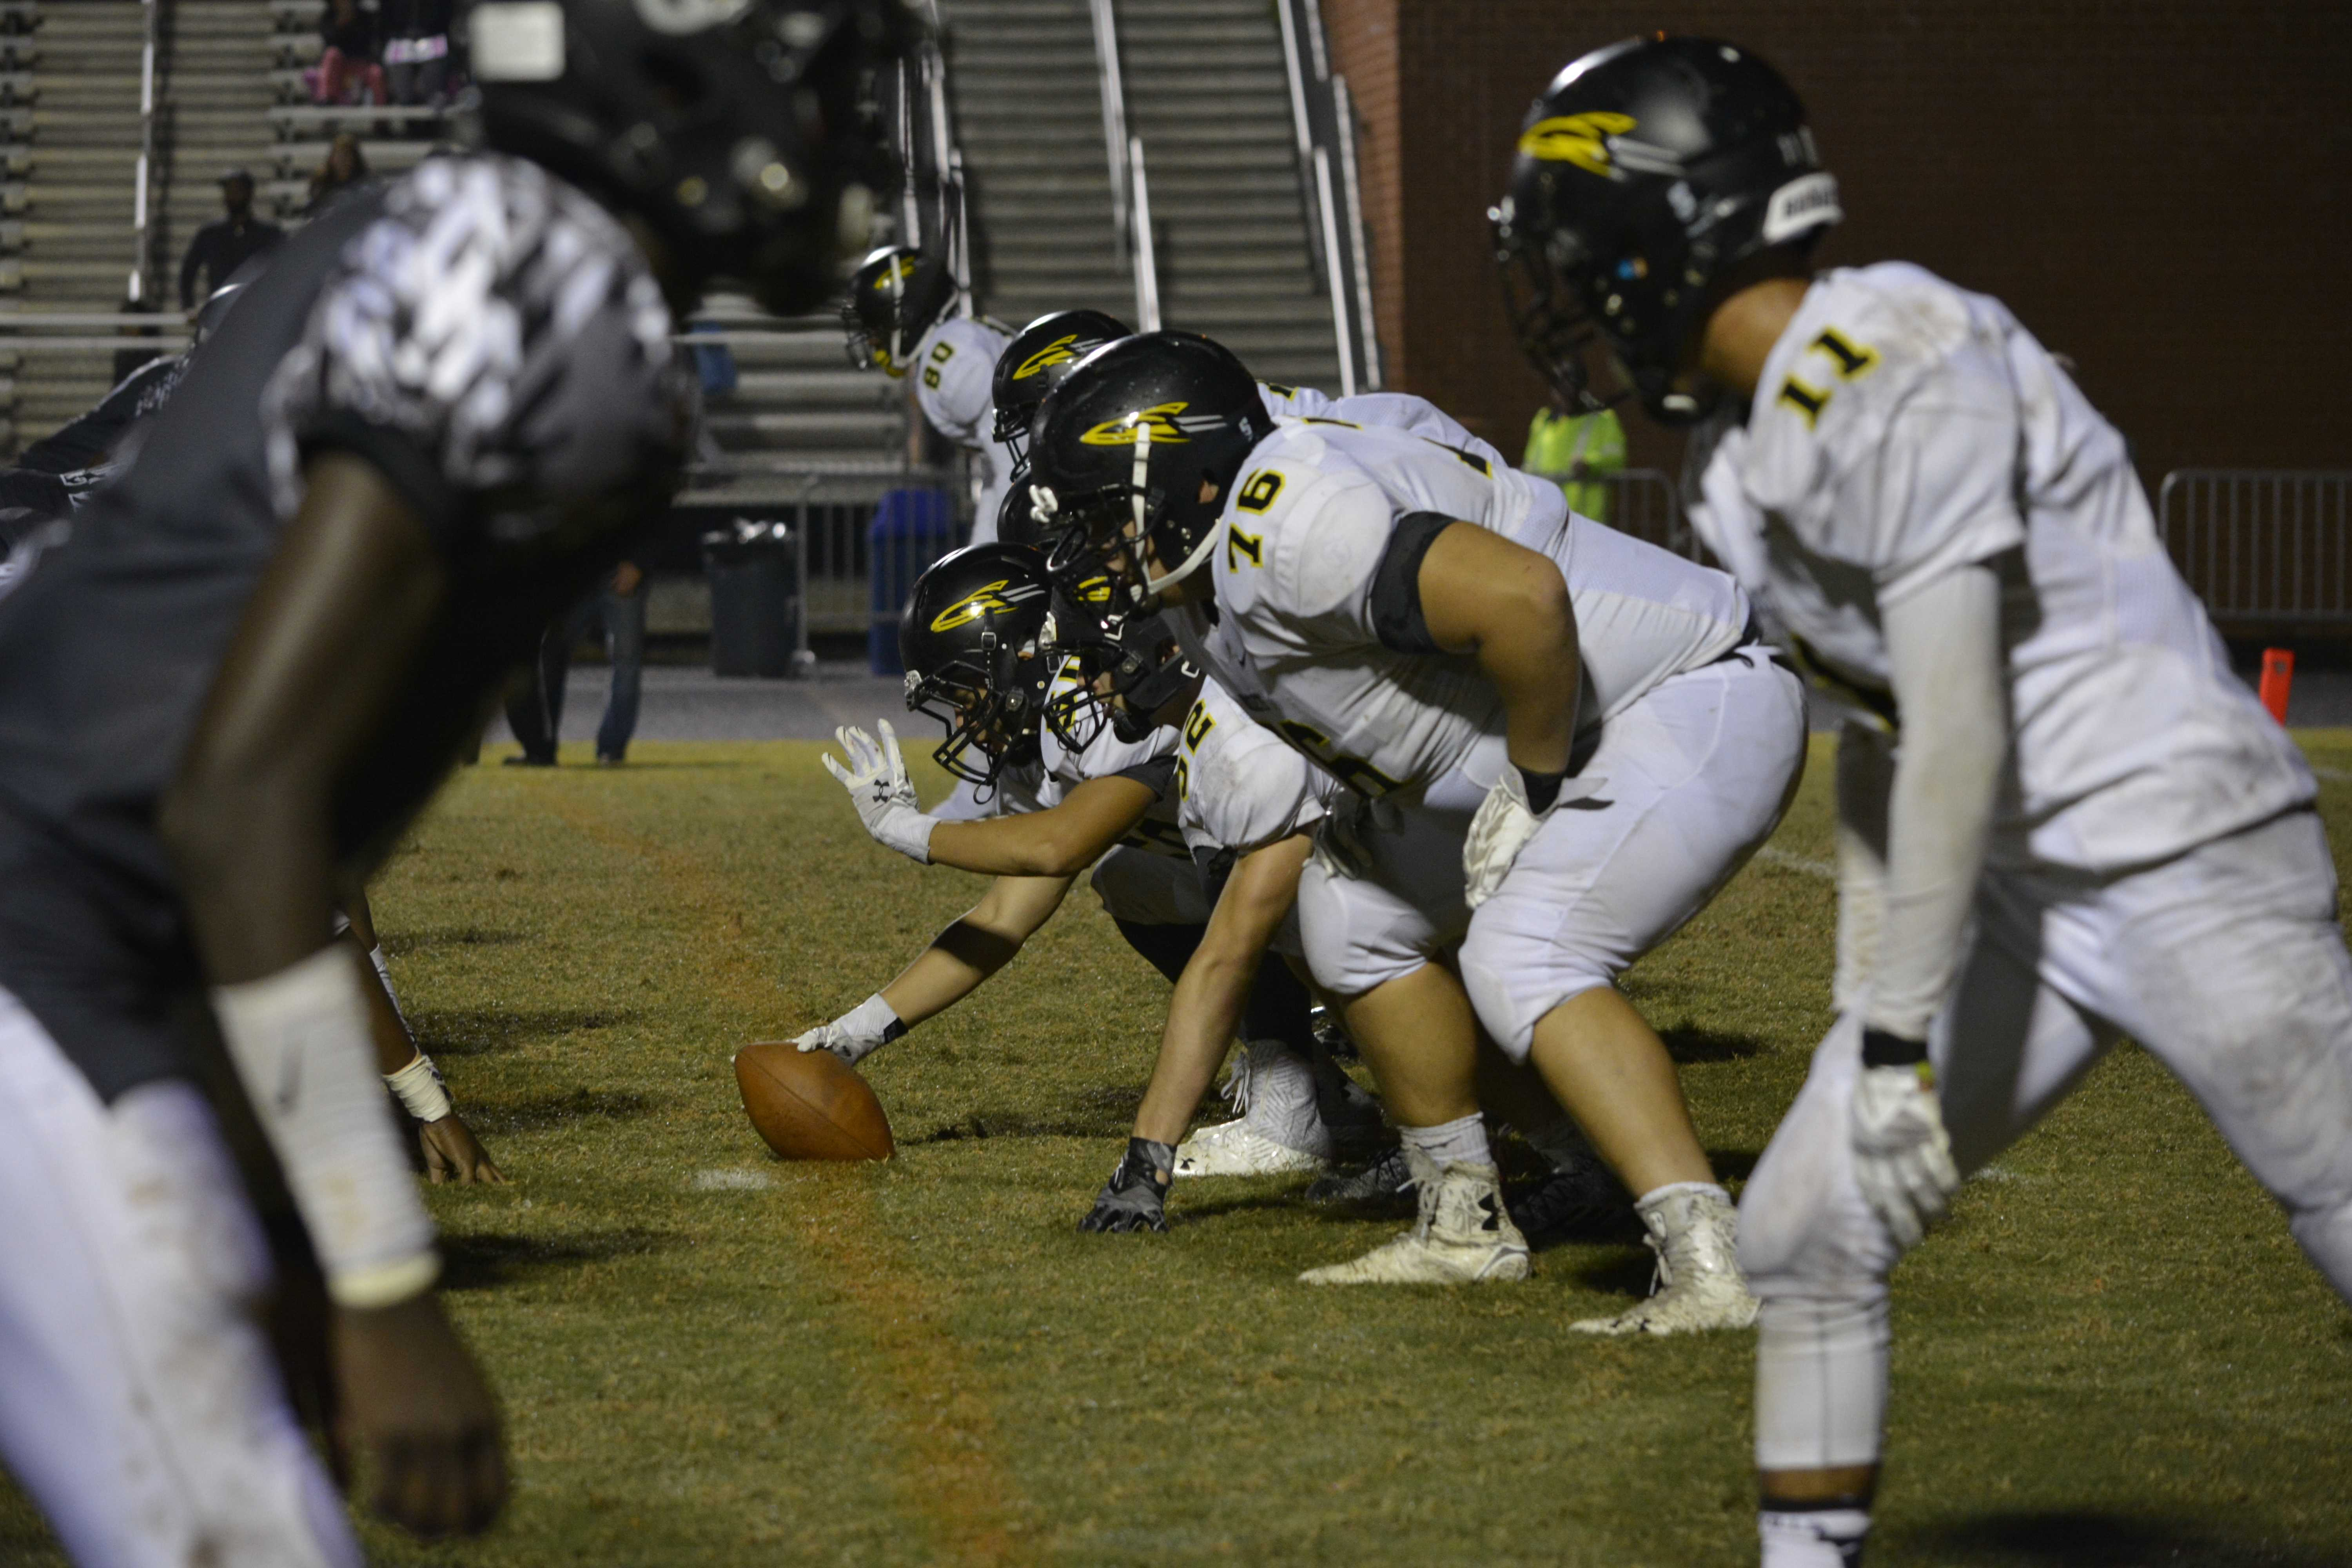 Rockets football becomes 5-1 after tough loss to Northwest